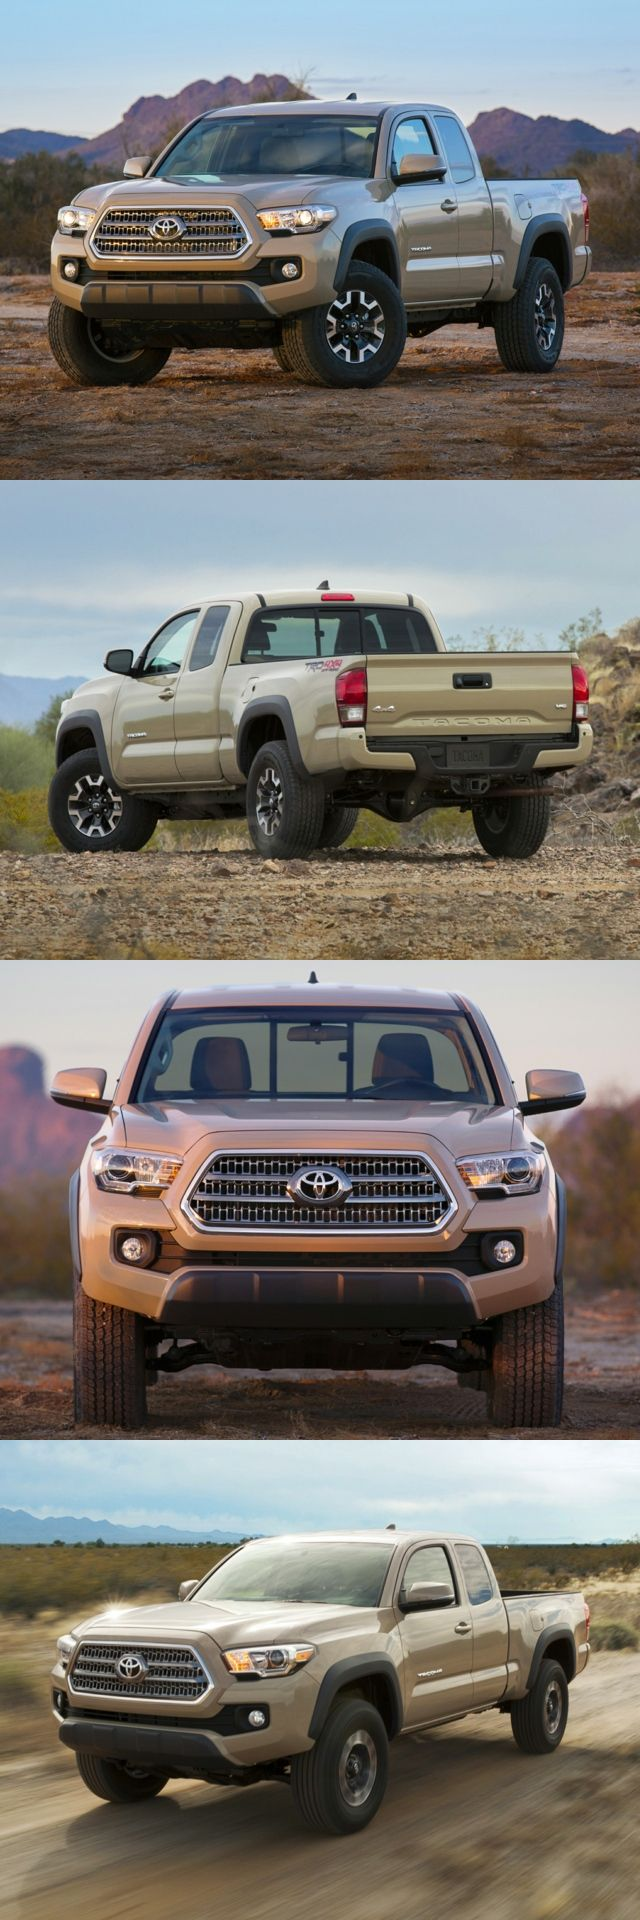 Come take a look at the all new 2016 toyota tacoma redesigned and ready for